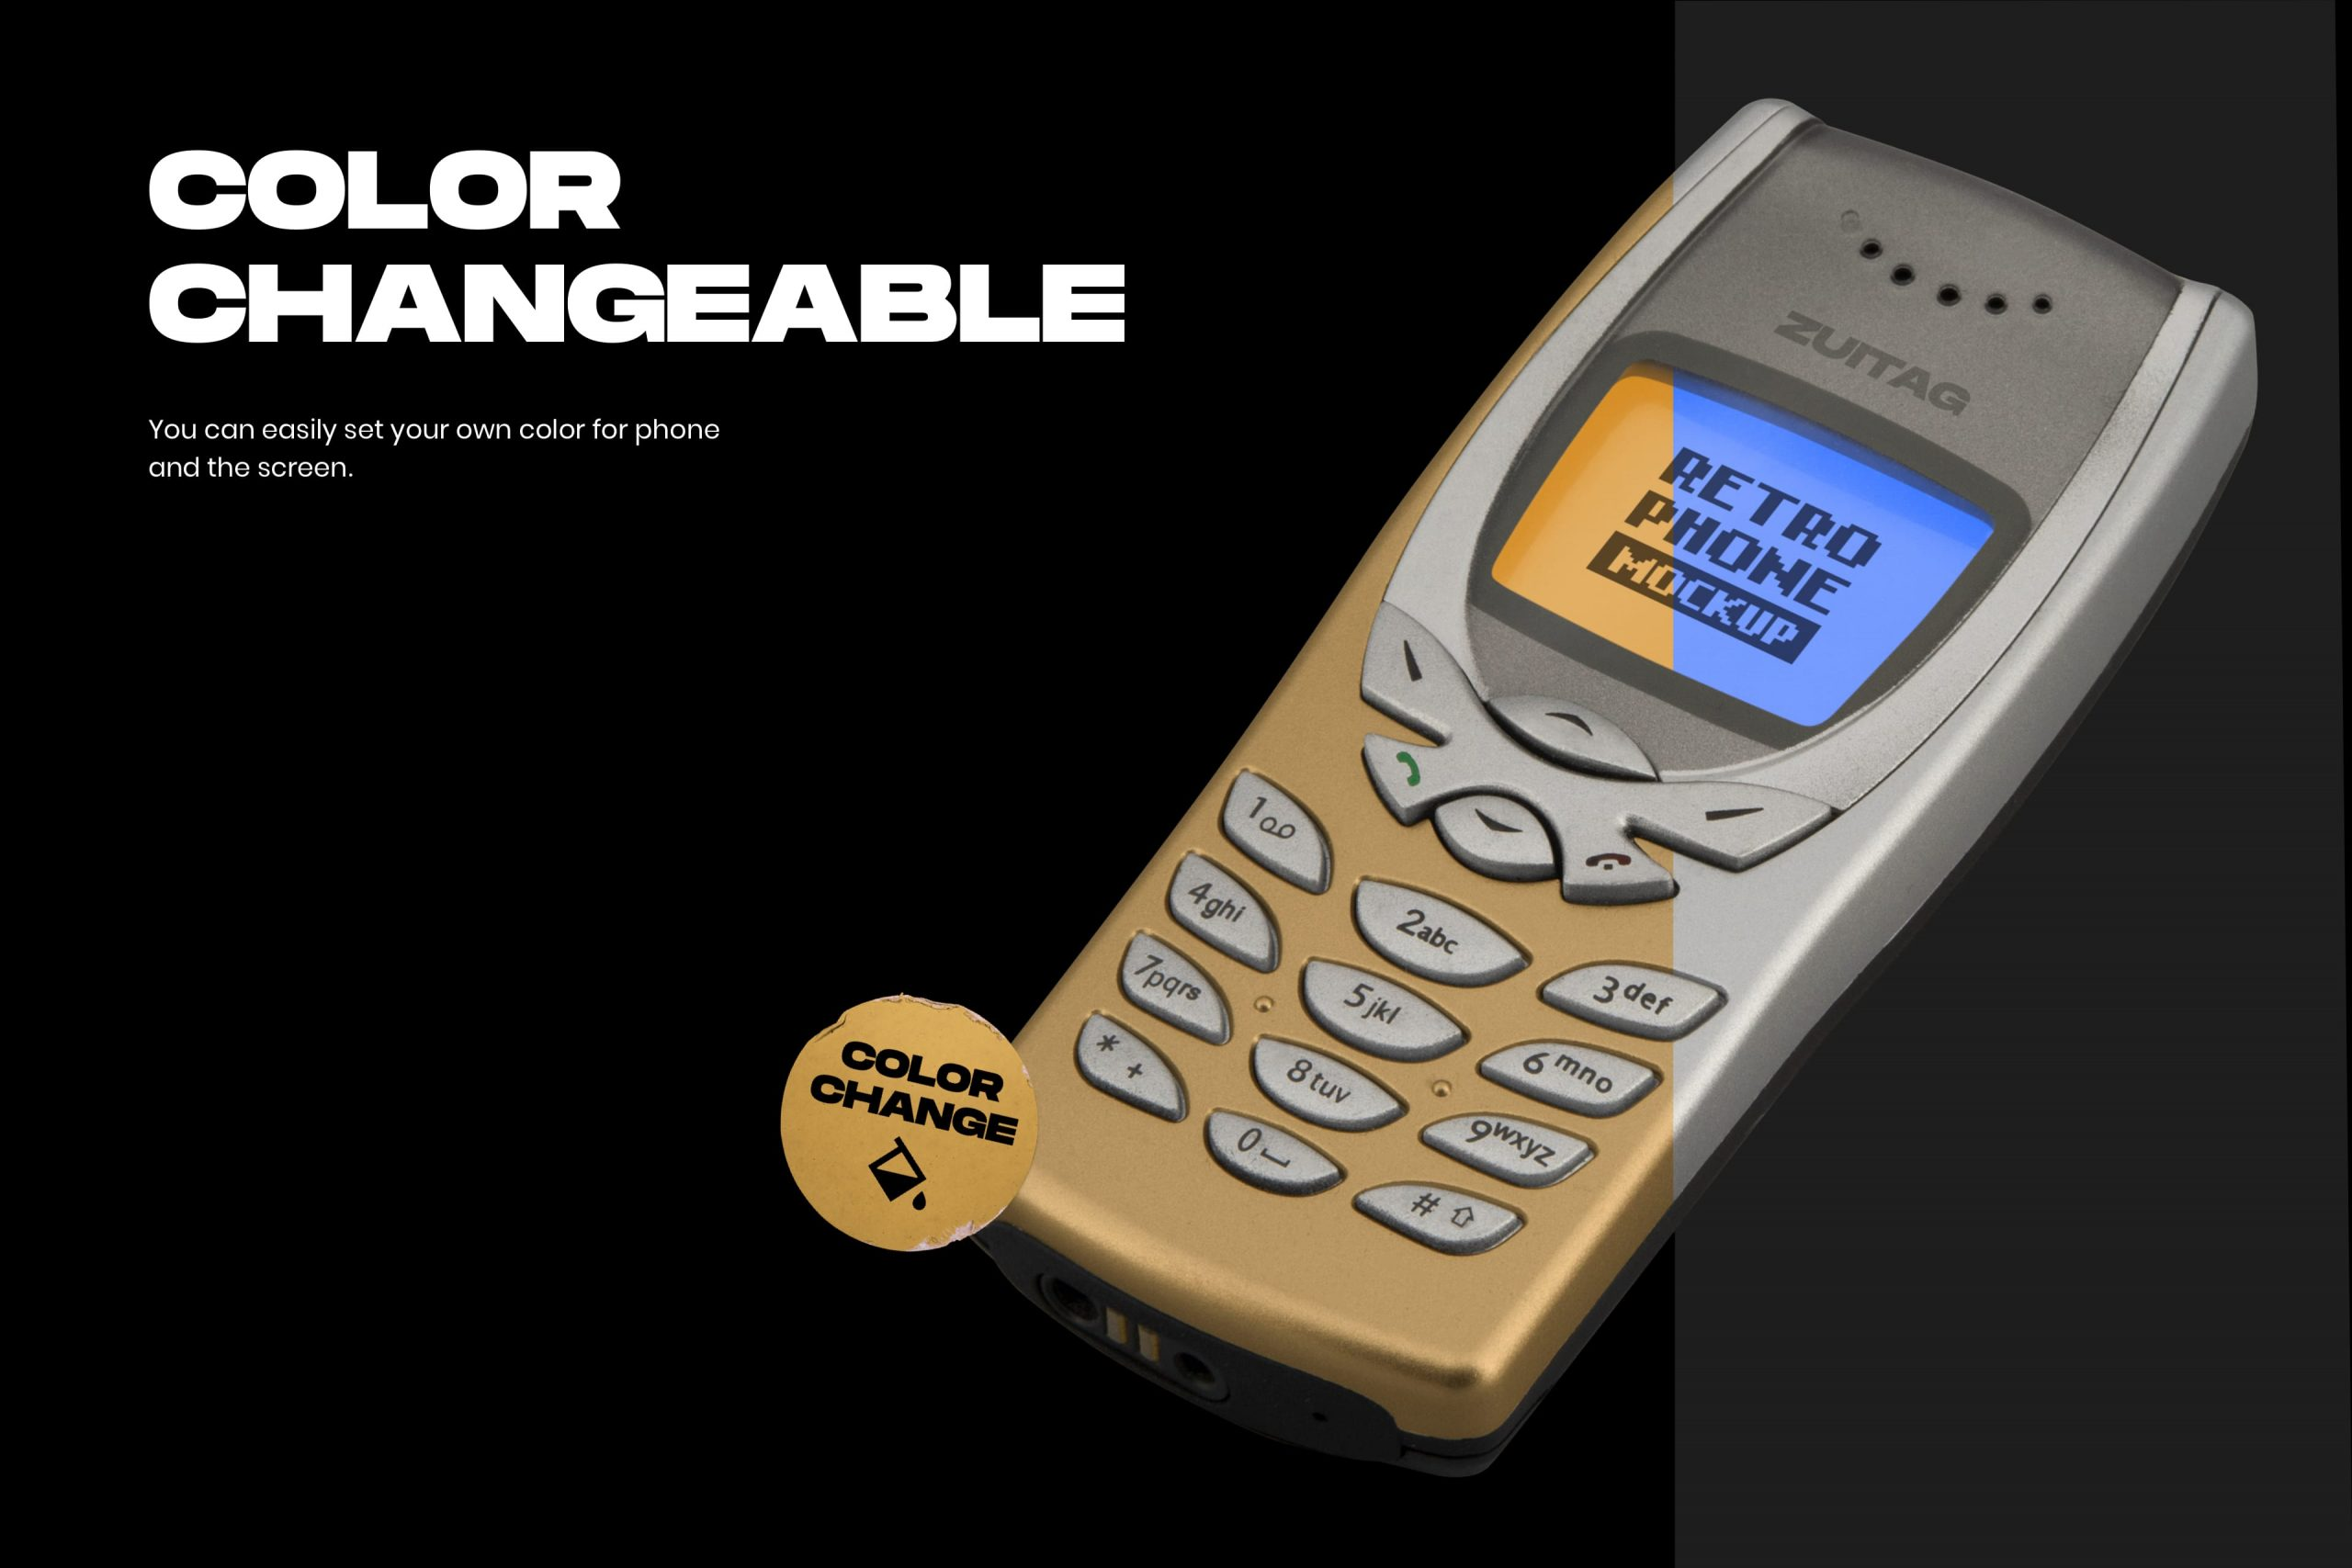 Retro Phone Mockup - Color Changeable